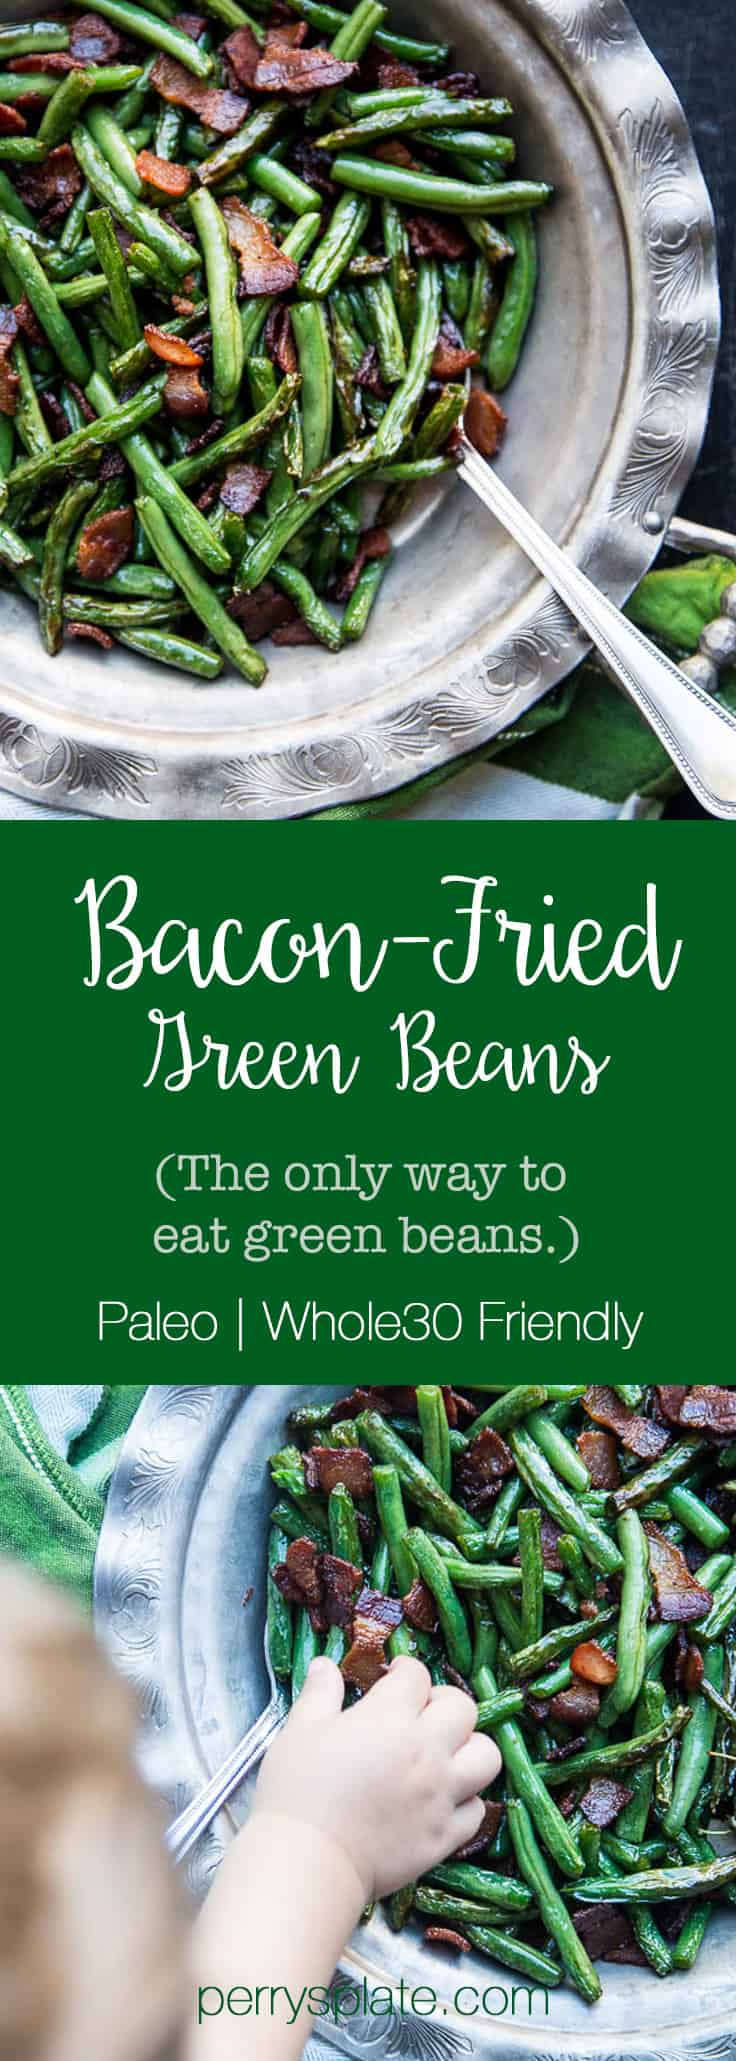 Bacon-Fried Green Beans | paleo recipes | Whole30 recipes | gluten-free recipes | dairy-free recipes | keto recipes | low carb recipes | perrysplate.com